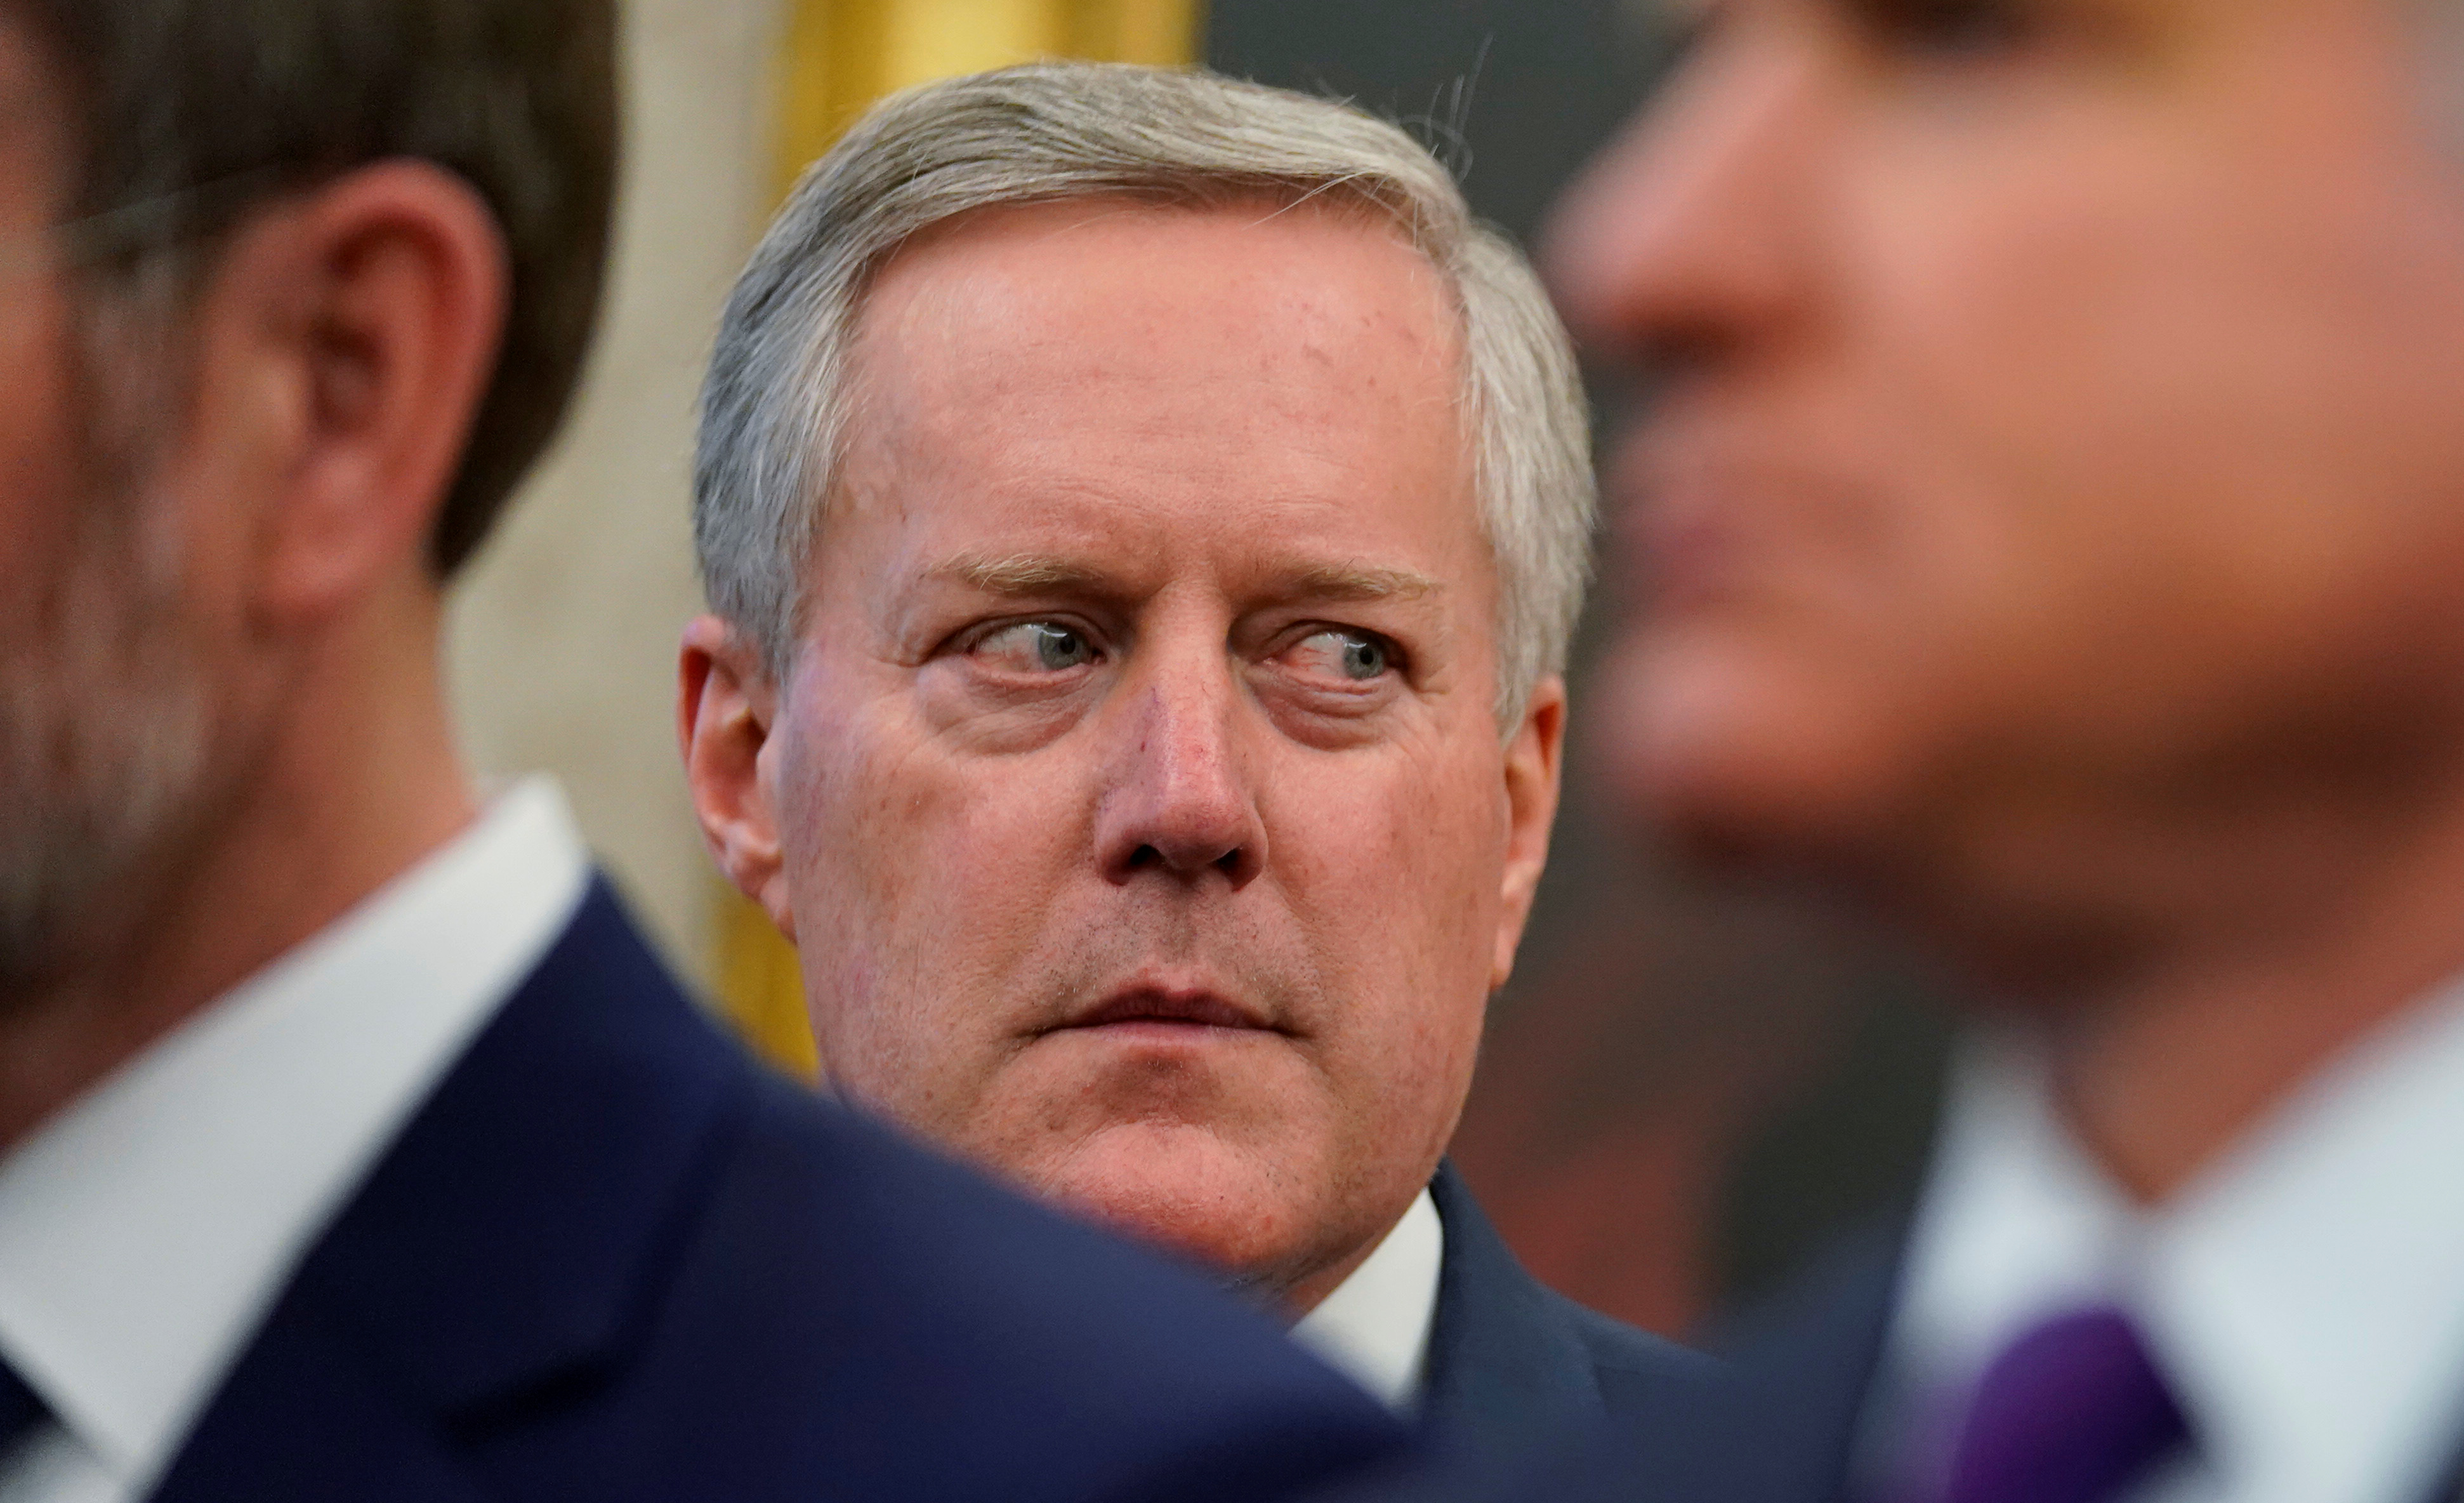 Rep. Mark Meadows (R-NC), reported to be under consideration to be U.S. President Donald Trump's next White House Chief of Staff, watches as the president talks to reporters after signing the Iraq and Syria Genocide Relief and Accountability Act of 2018 in the Oval Office at the White House in Washington, U.S. December 11, 2018. REUTERS/Jonathan Ernst